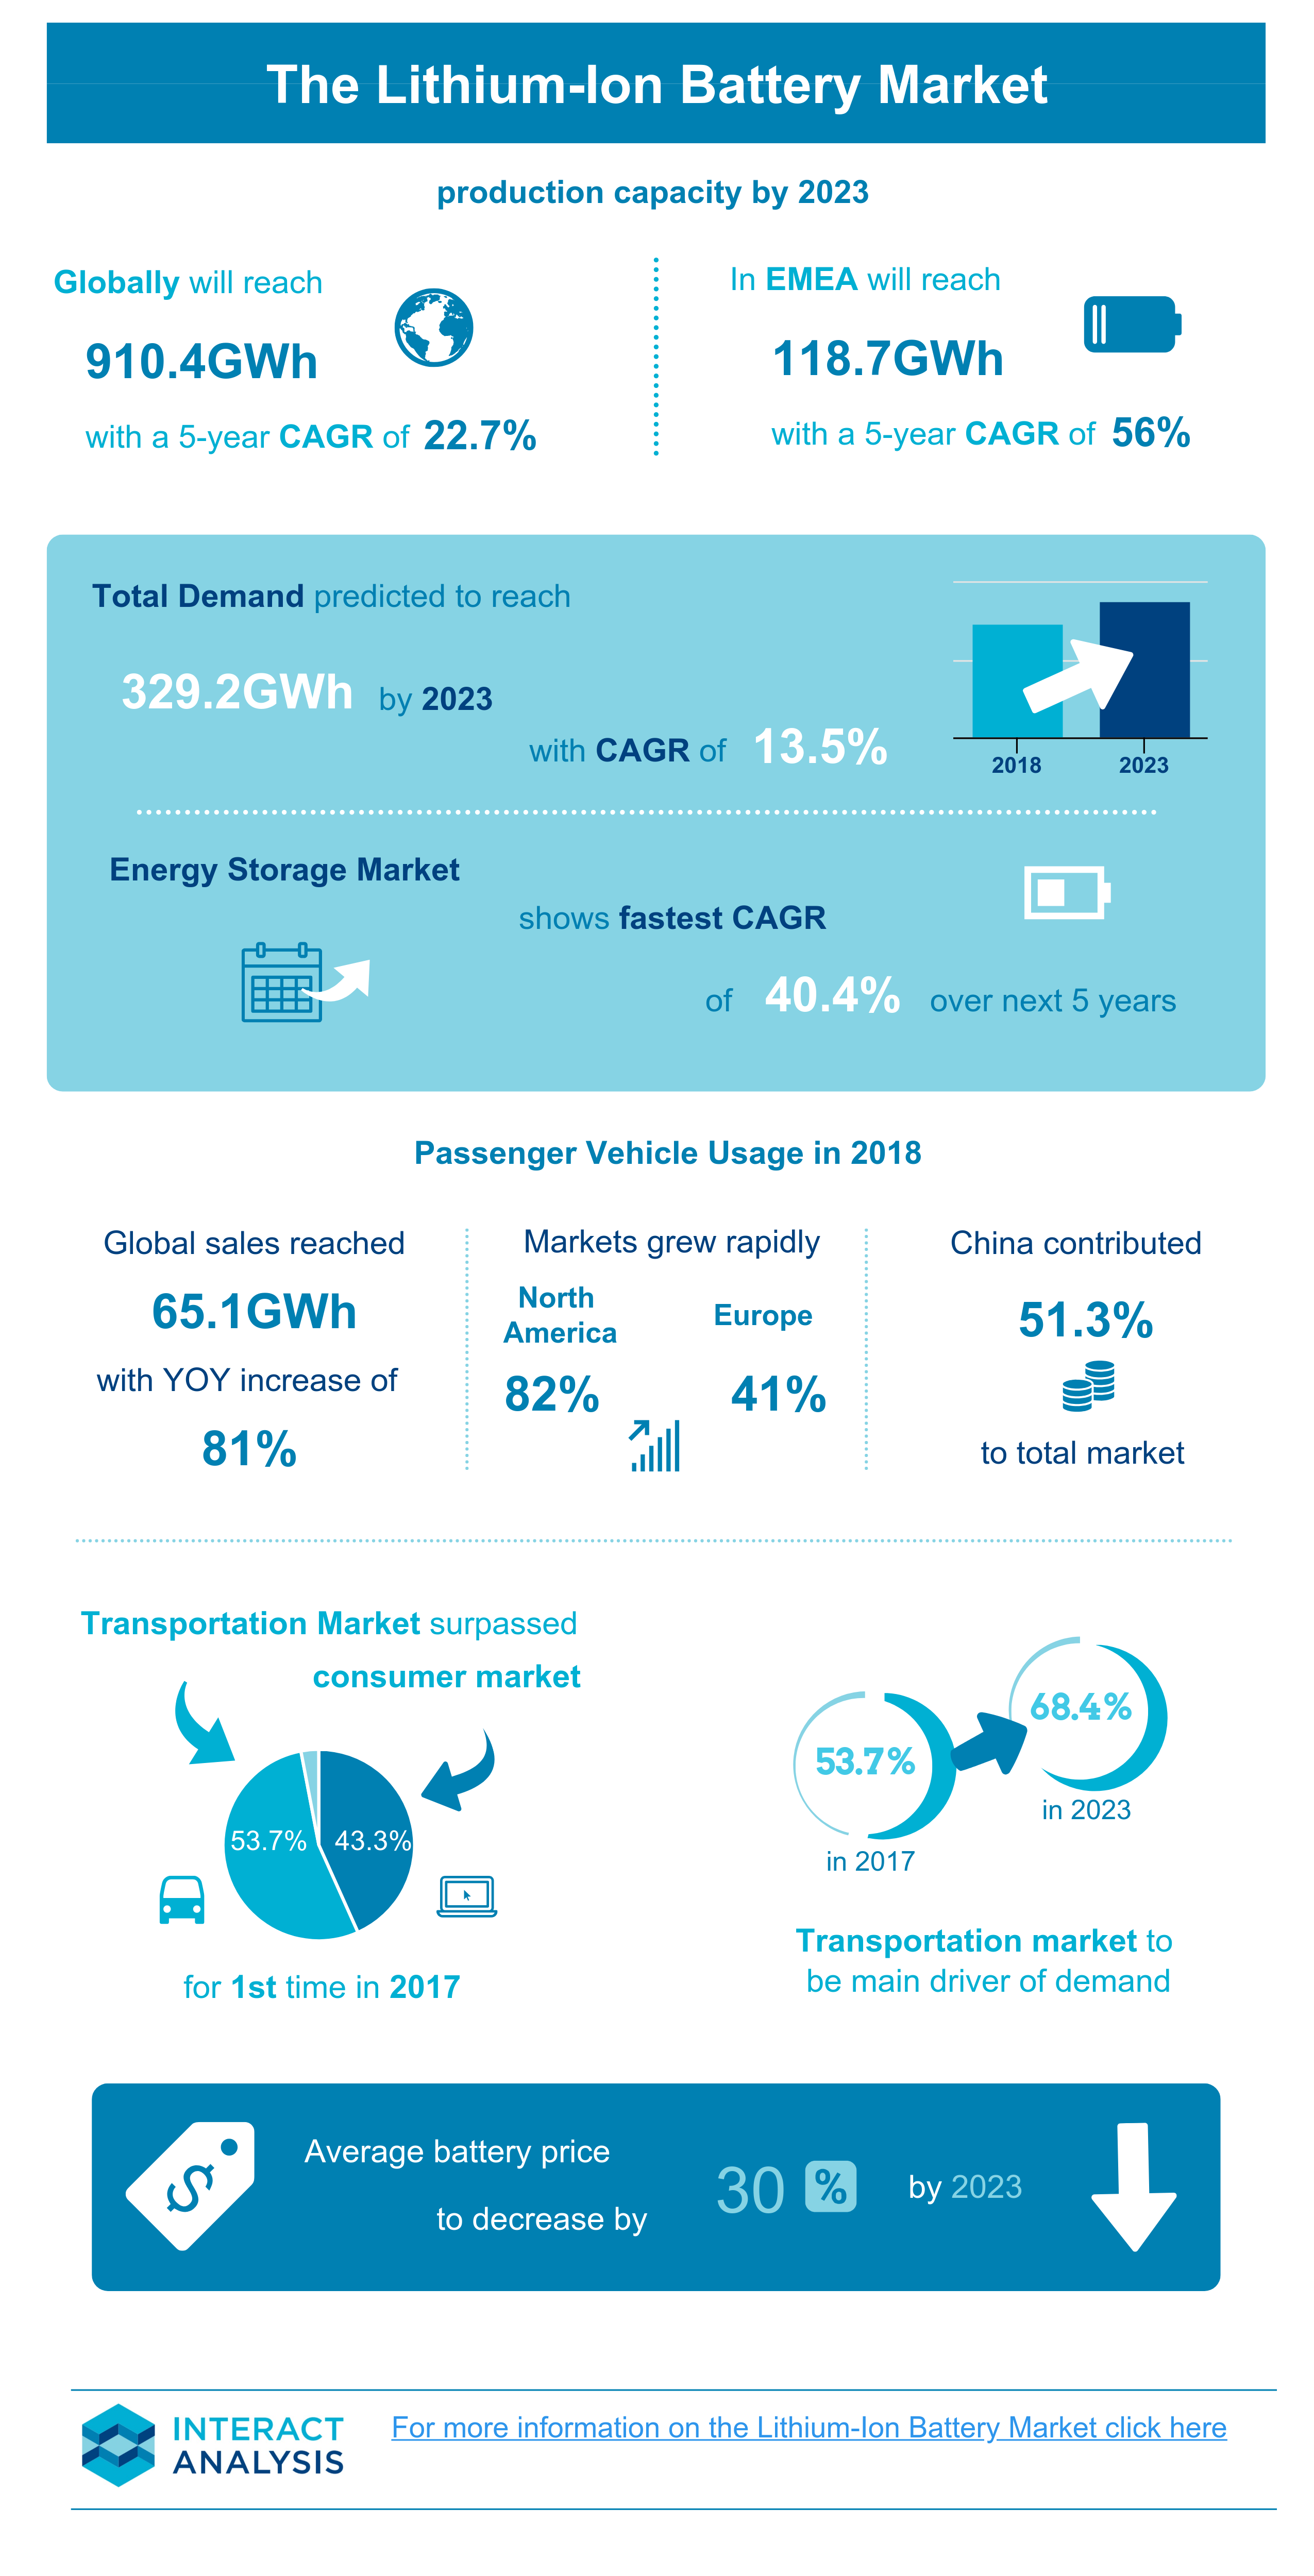 The Lithium Ion Battery Market Infographic